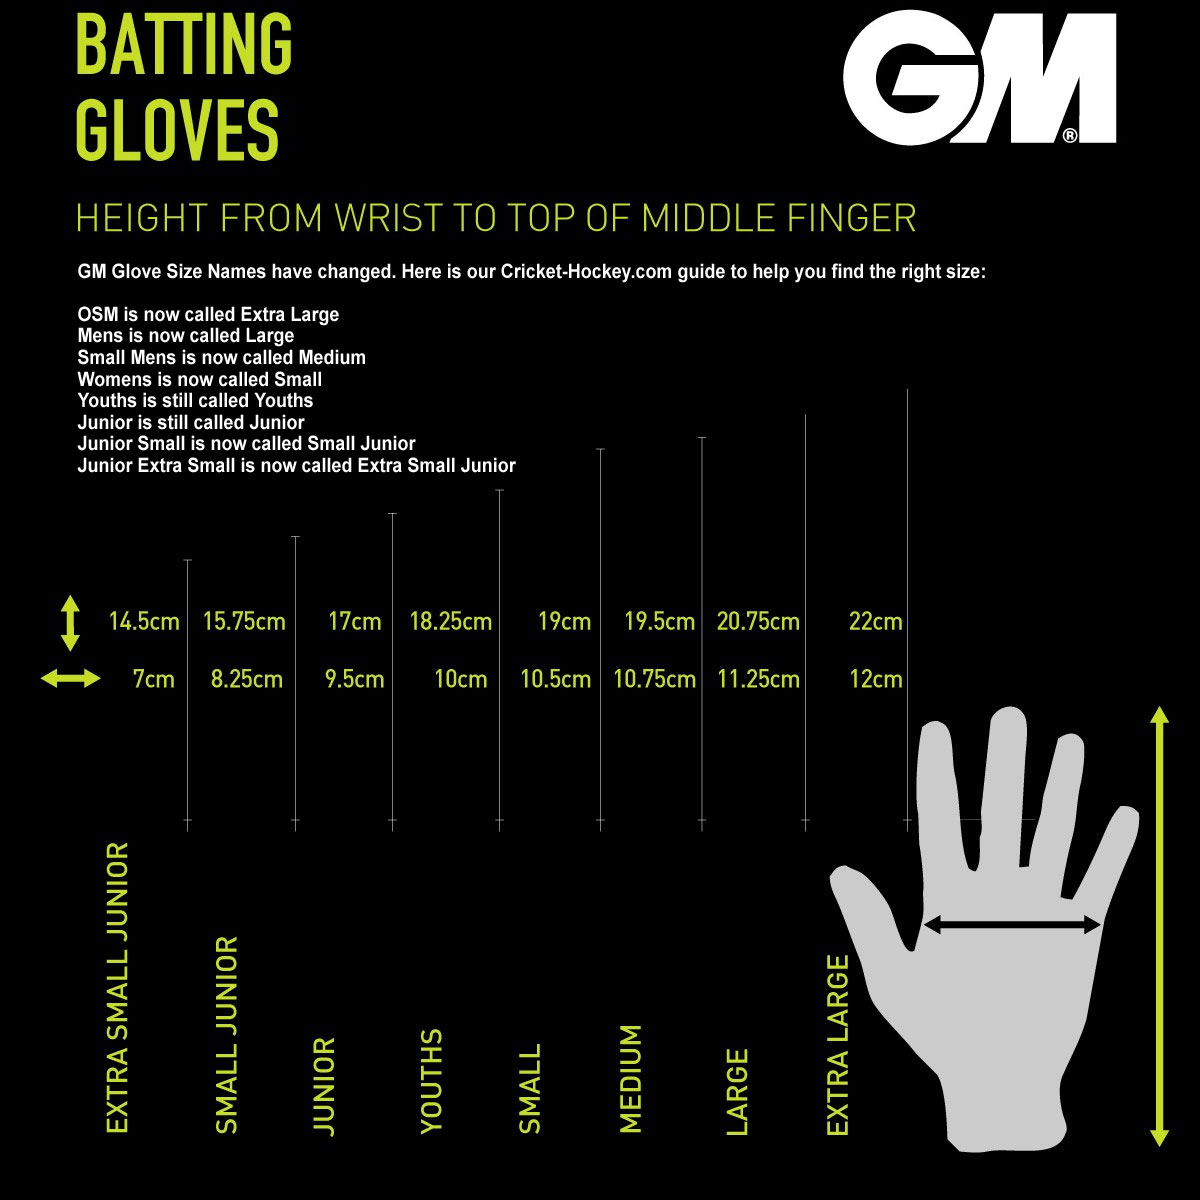 GM Glove Size Guide